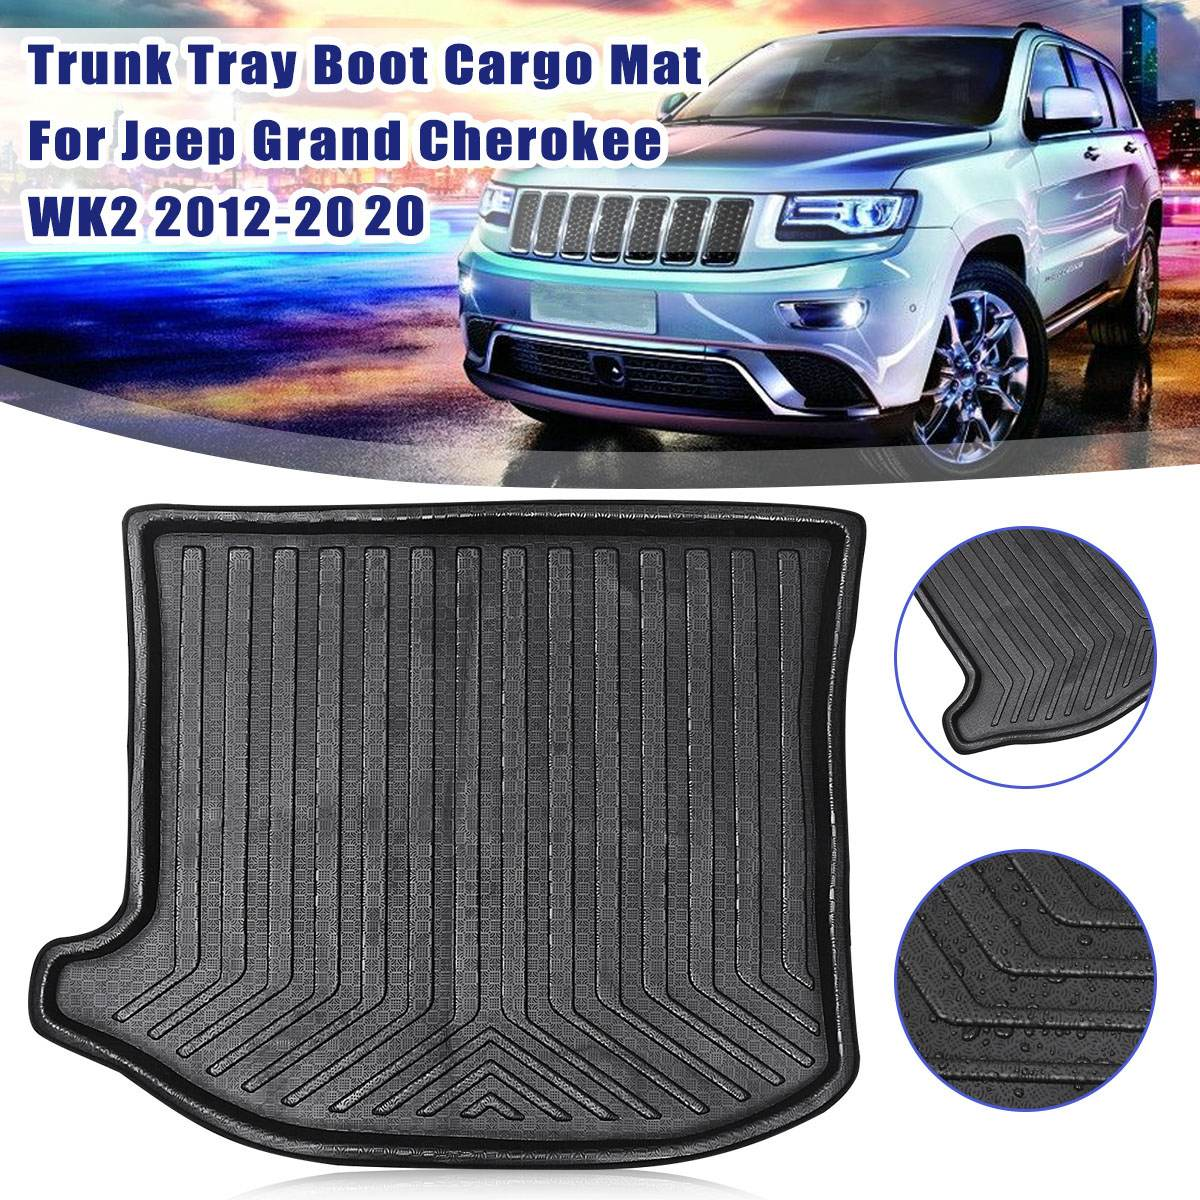 Rear Trunk Boot Liner Cargo Mat Tray Floor Carpet Mud Kick Protector Fit For Jeep Grand Cherokee WK2 2012 2013 2014 2015-2020